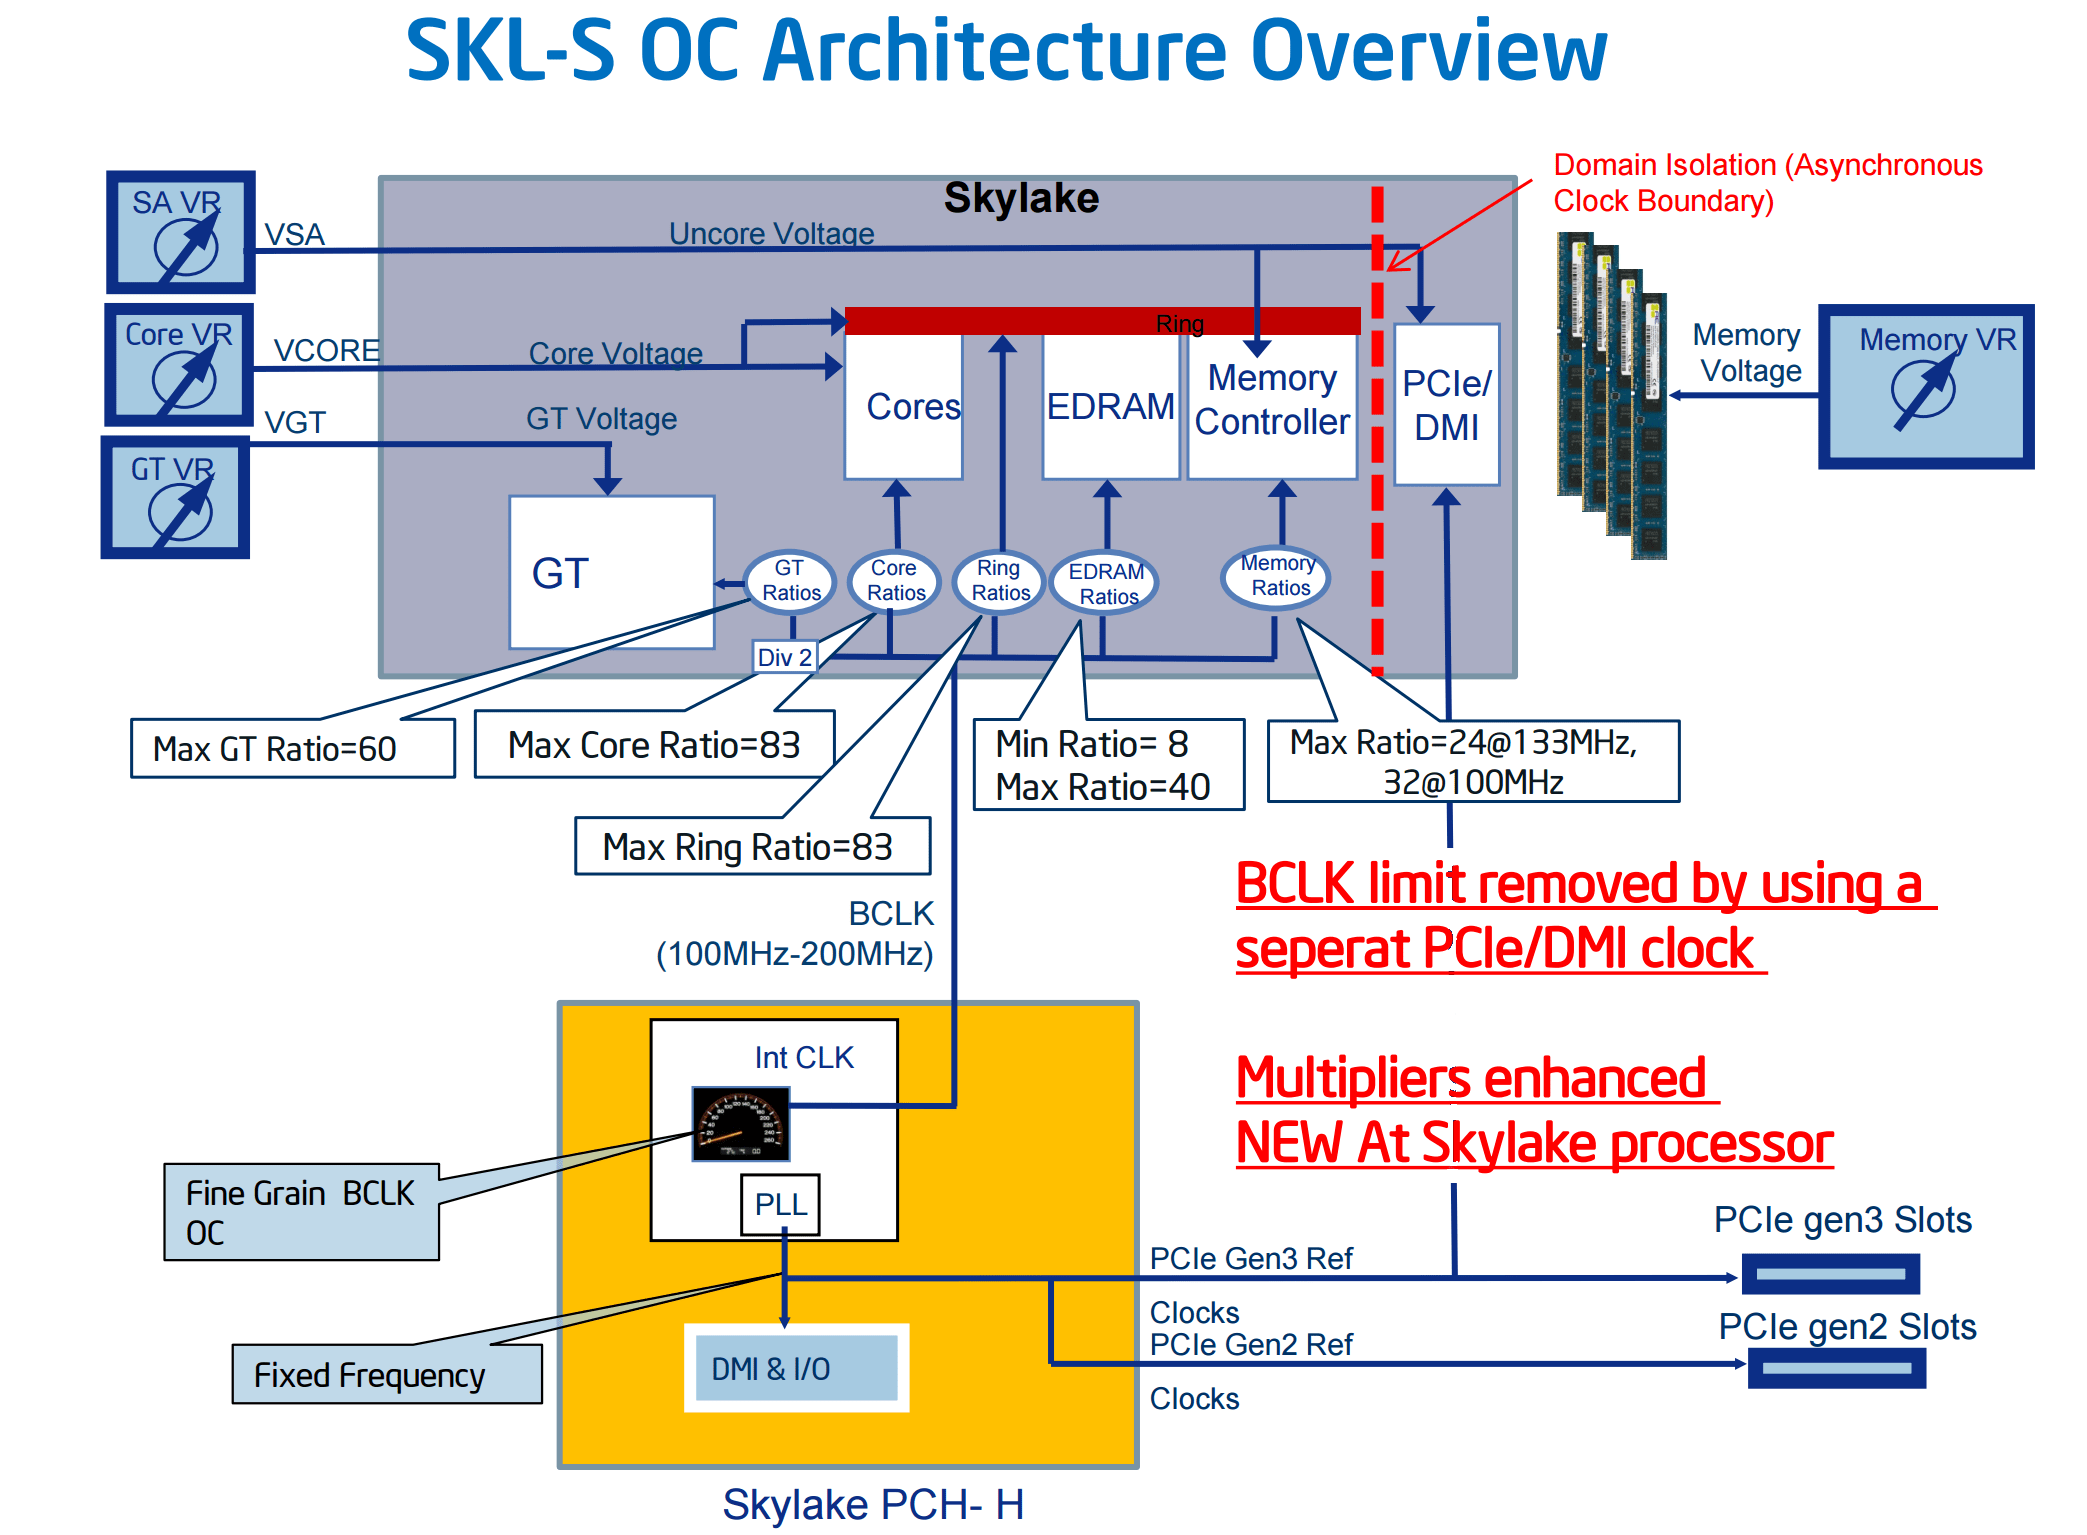 Fast For All Skylike Processors Even Without Open Product Hwzone Frequency Multiplication Not Only To The Expensive K With But Also Other Cheaper Models Whose Doubles Are Locked Upwards